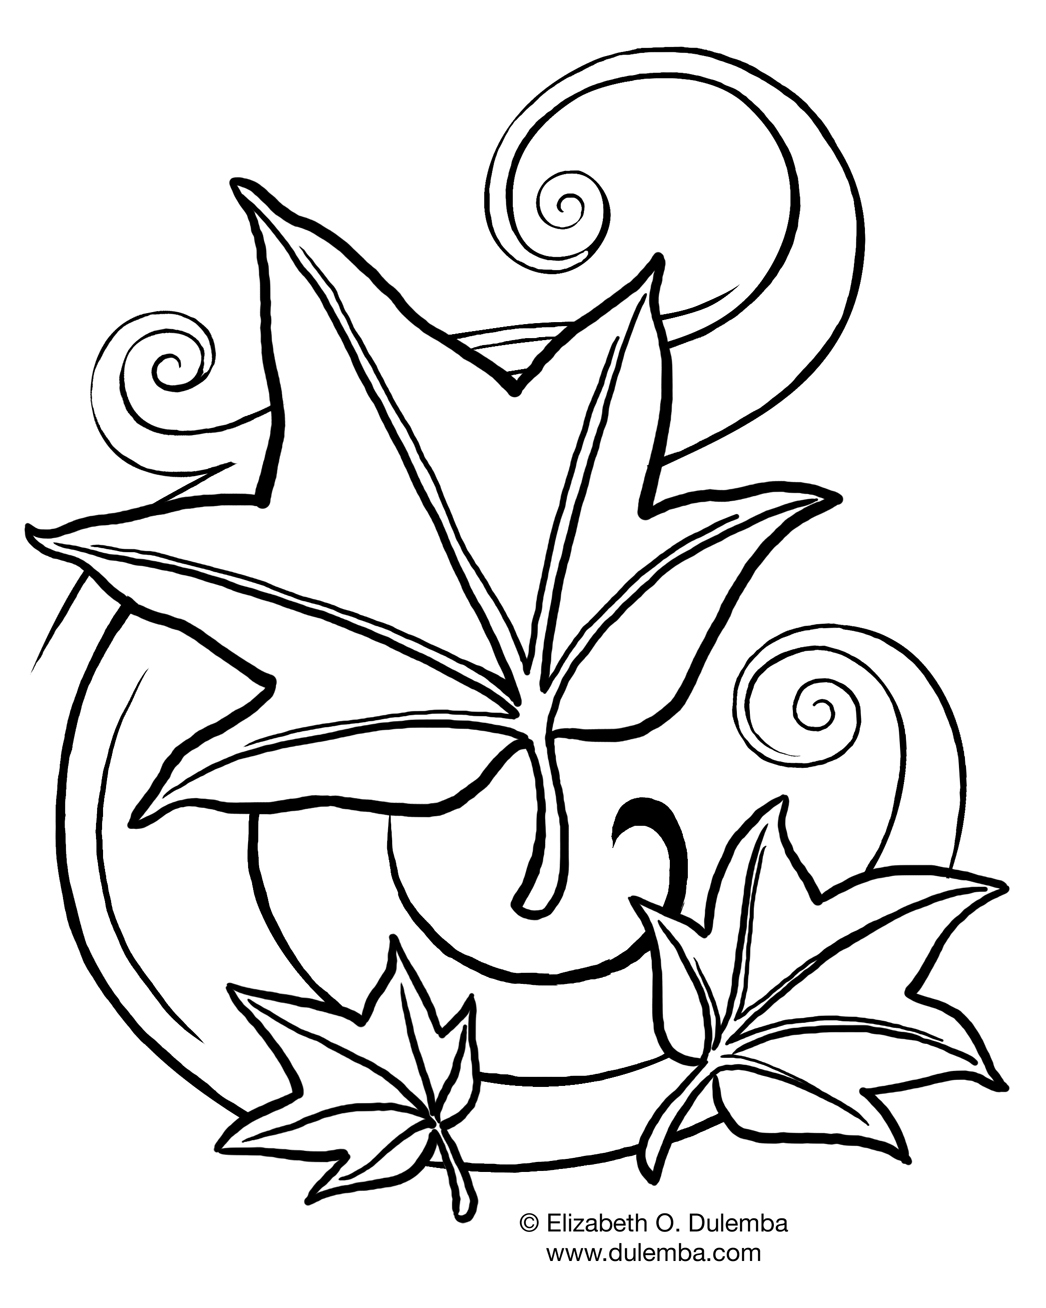 coloring pages for fall - photo#6